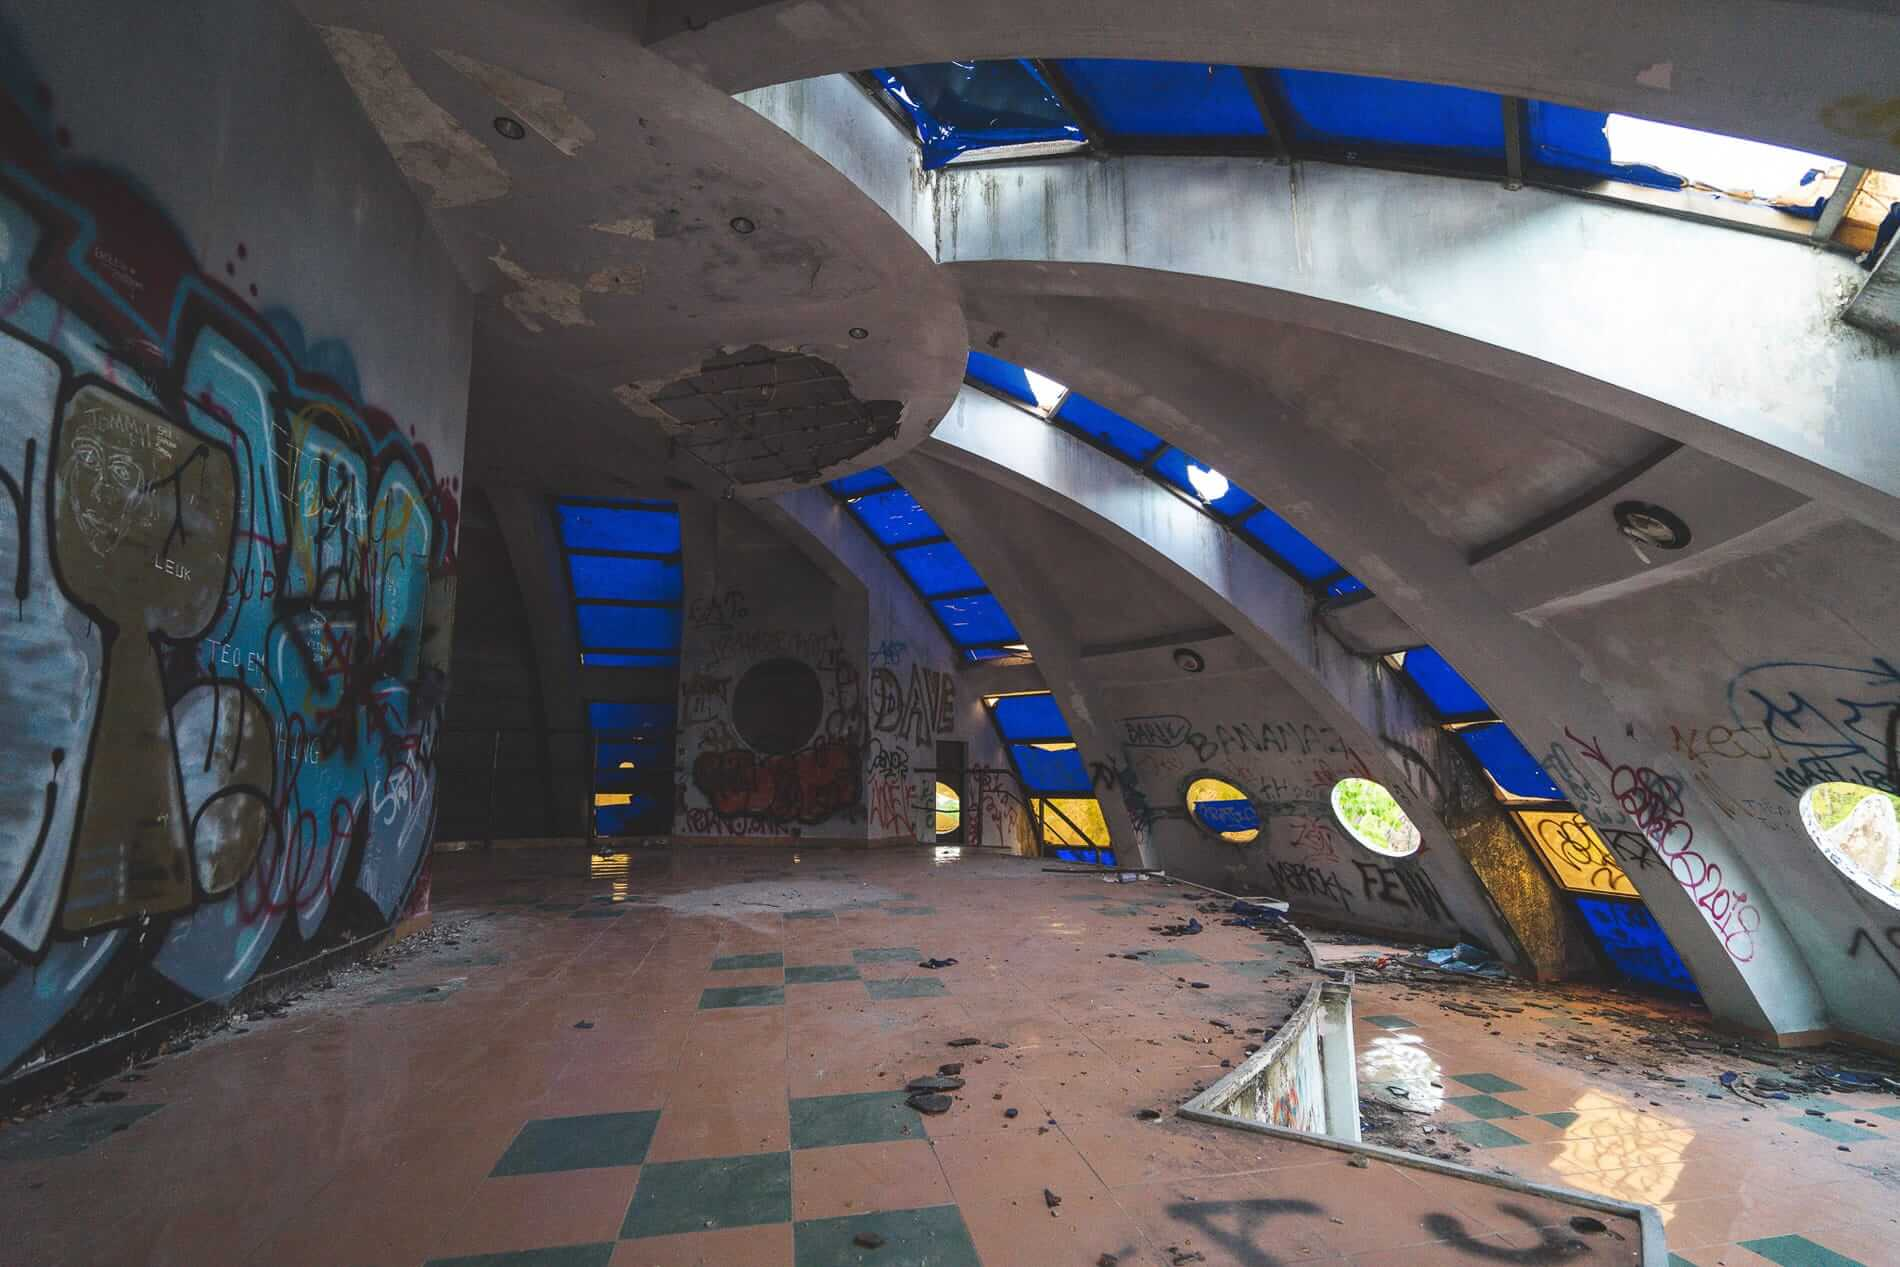 spaceship-Esque aquarium - Hue's abandoned water park